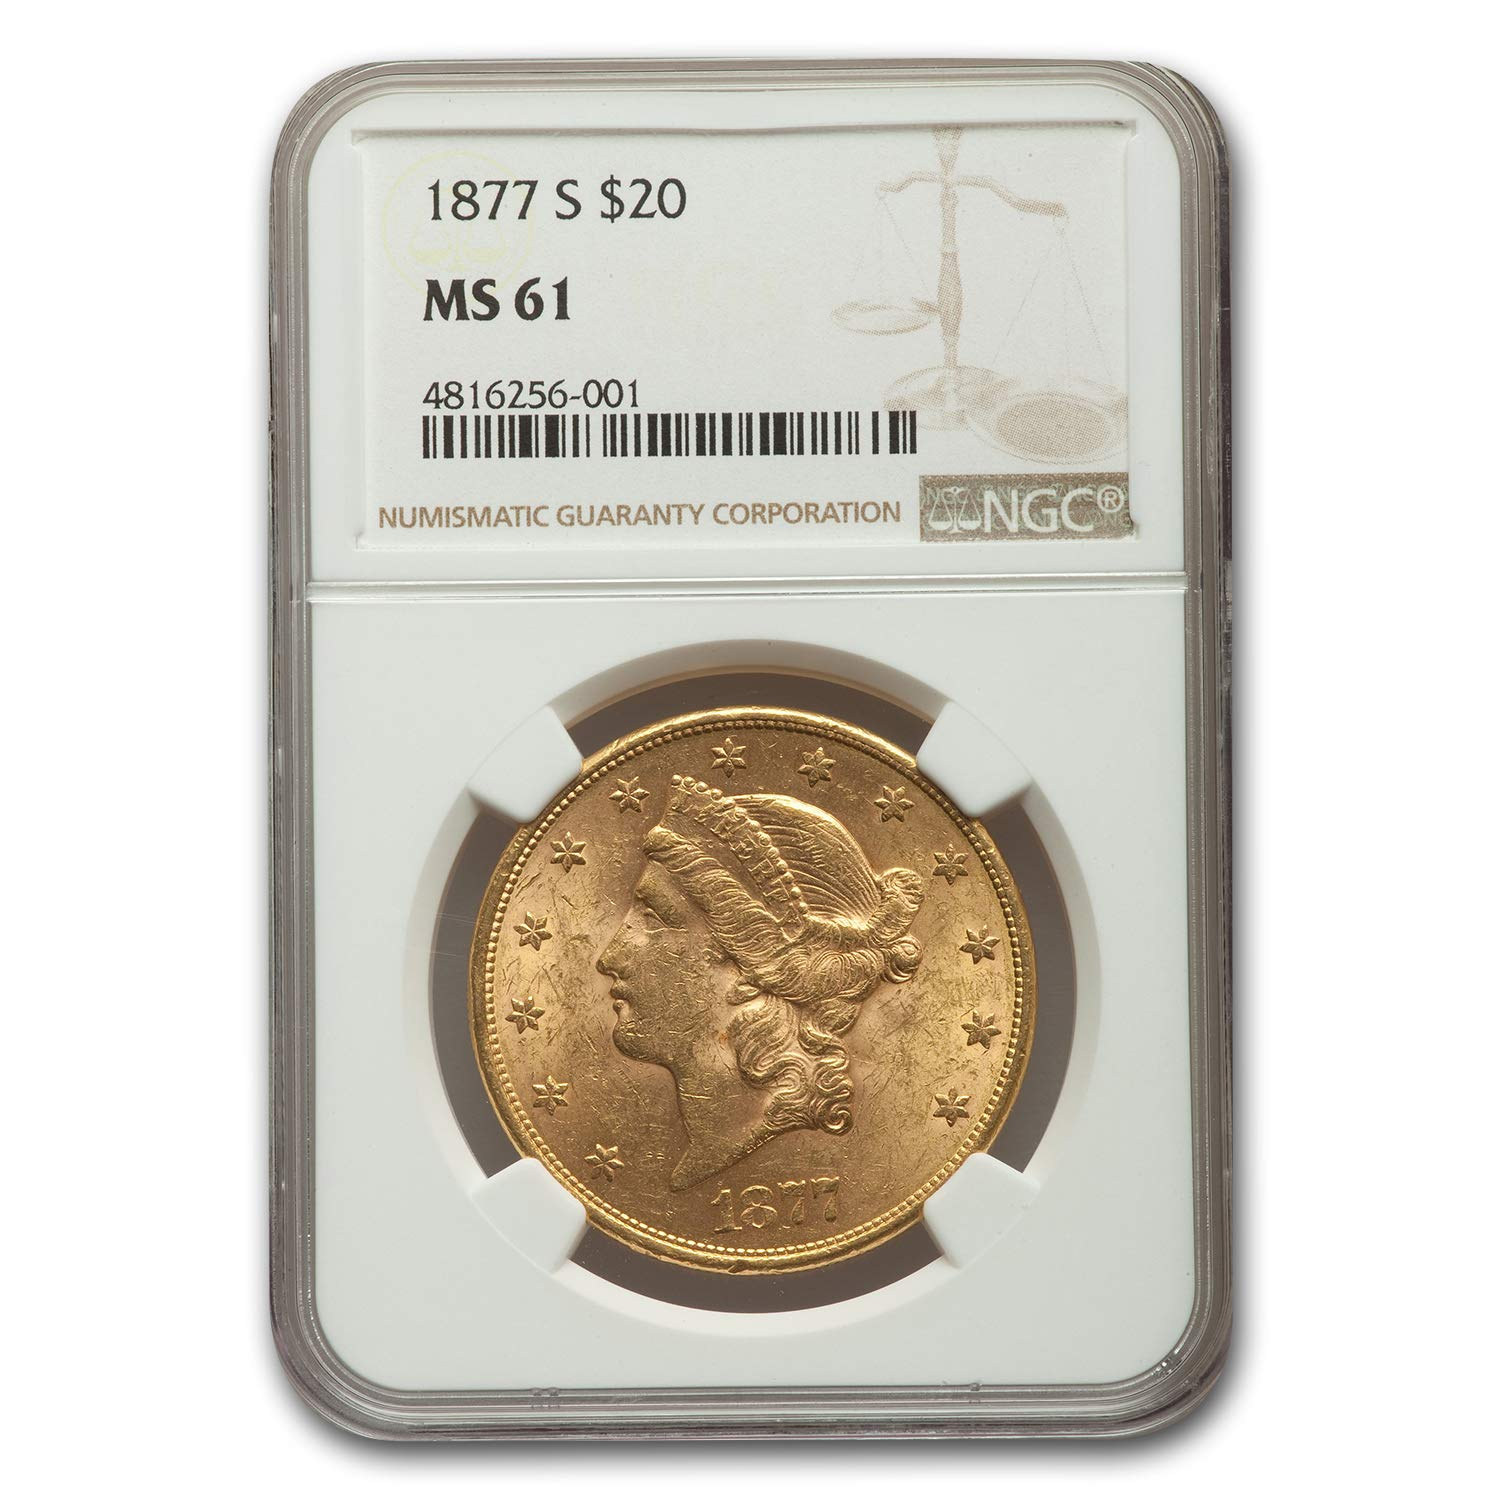 1877 S $20 Liberty Gold Double Eagle MS-61 NGC G$20 MS-61